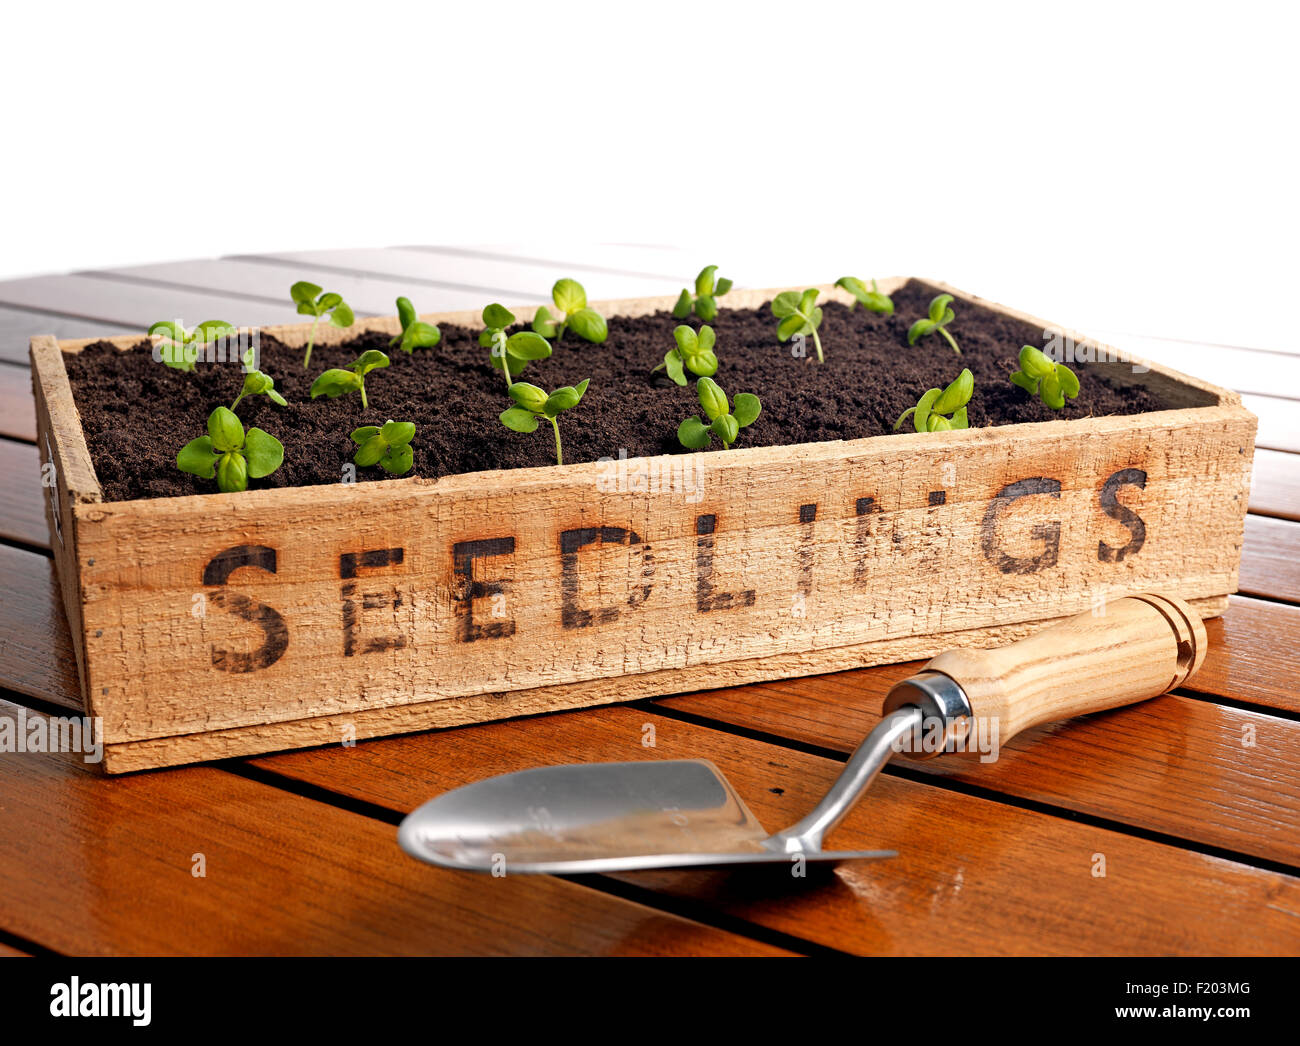 Seedling tray filled with soil - Stock Image